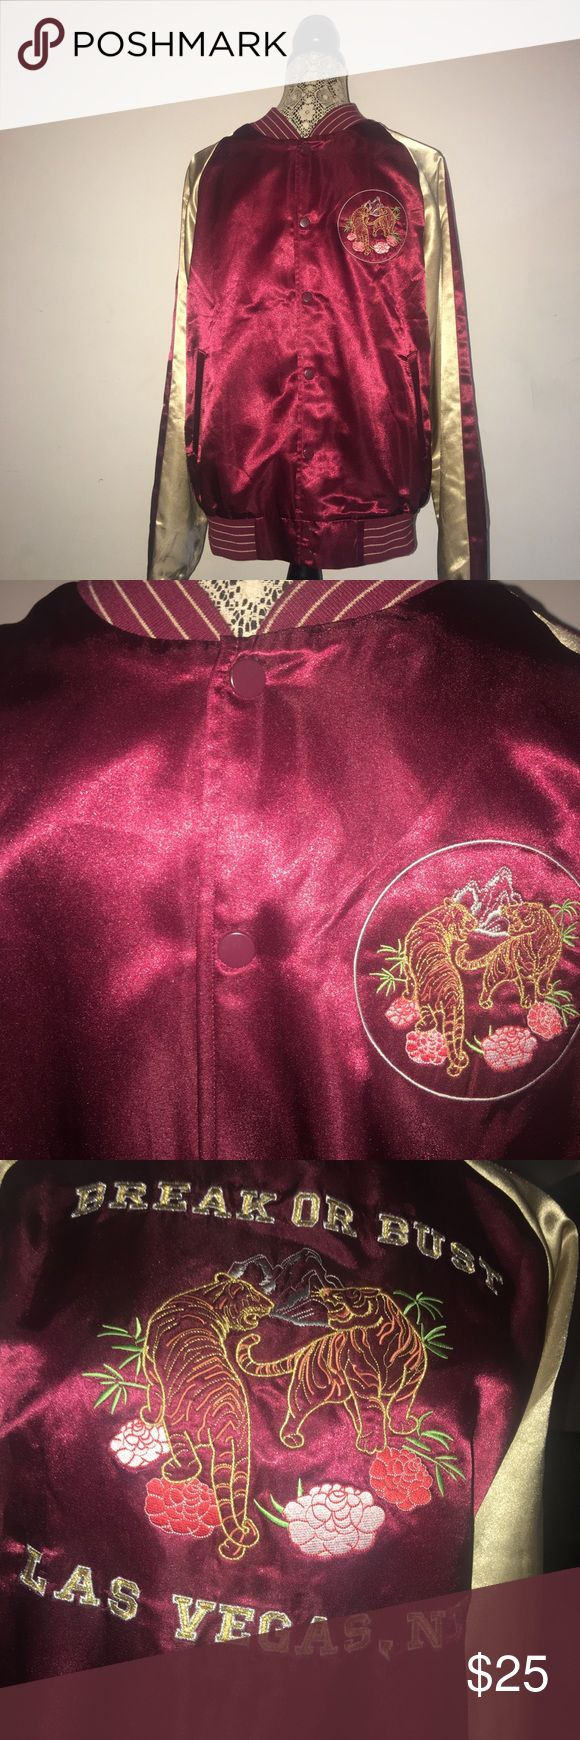 Men's Maroon and Gold Bomber Jacket Men's maroon and gold Bomber Jacket. Slightly worn but in great condition. Only worn about five times. NO STAINS! NO RIPS! Fits to size.   Material - 100% polyester Forever 21 Jackets & Coats Bomber & Varsity